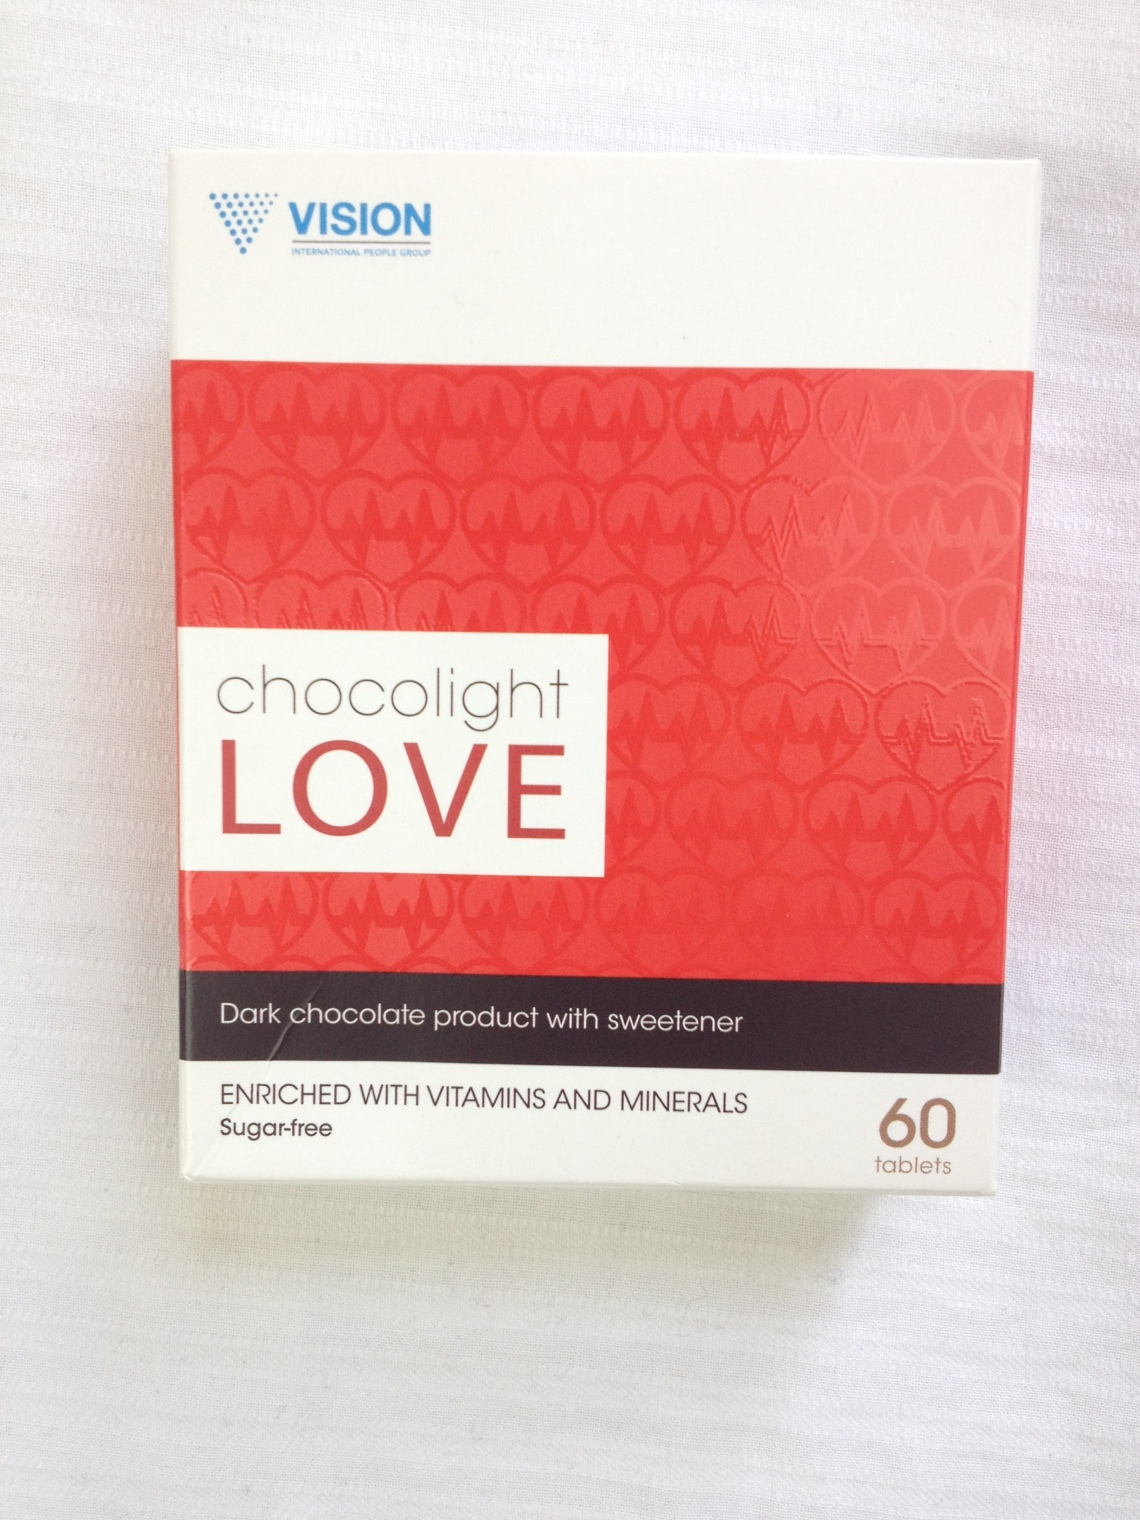 chocolight love vision